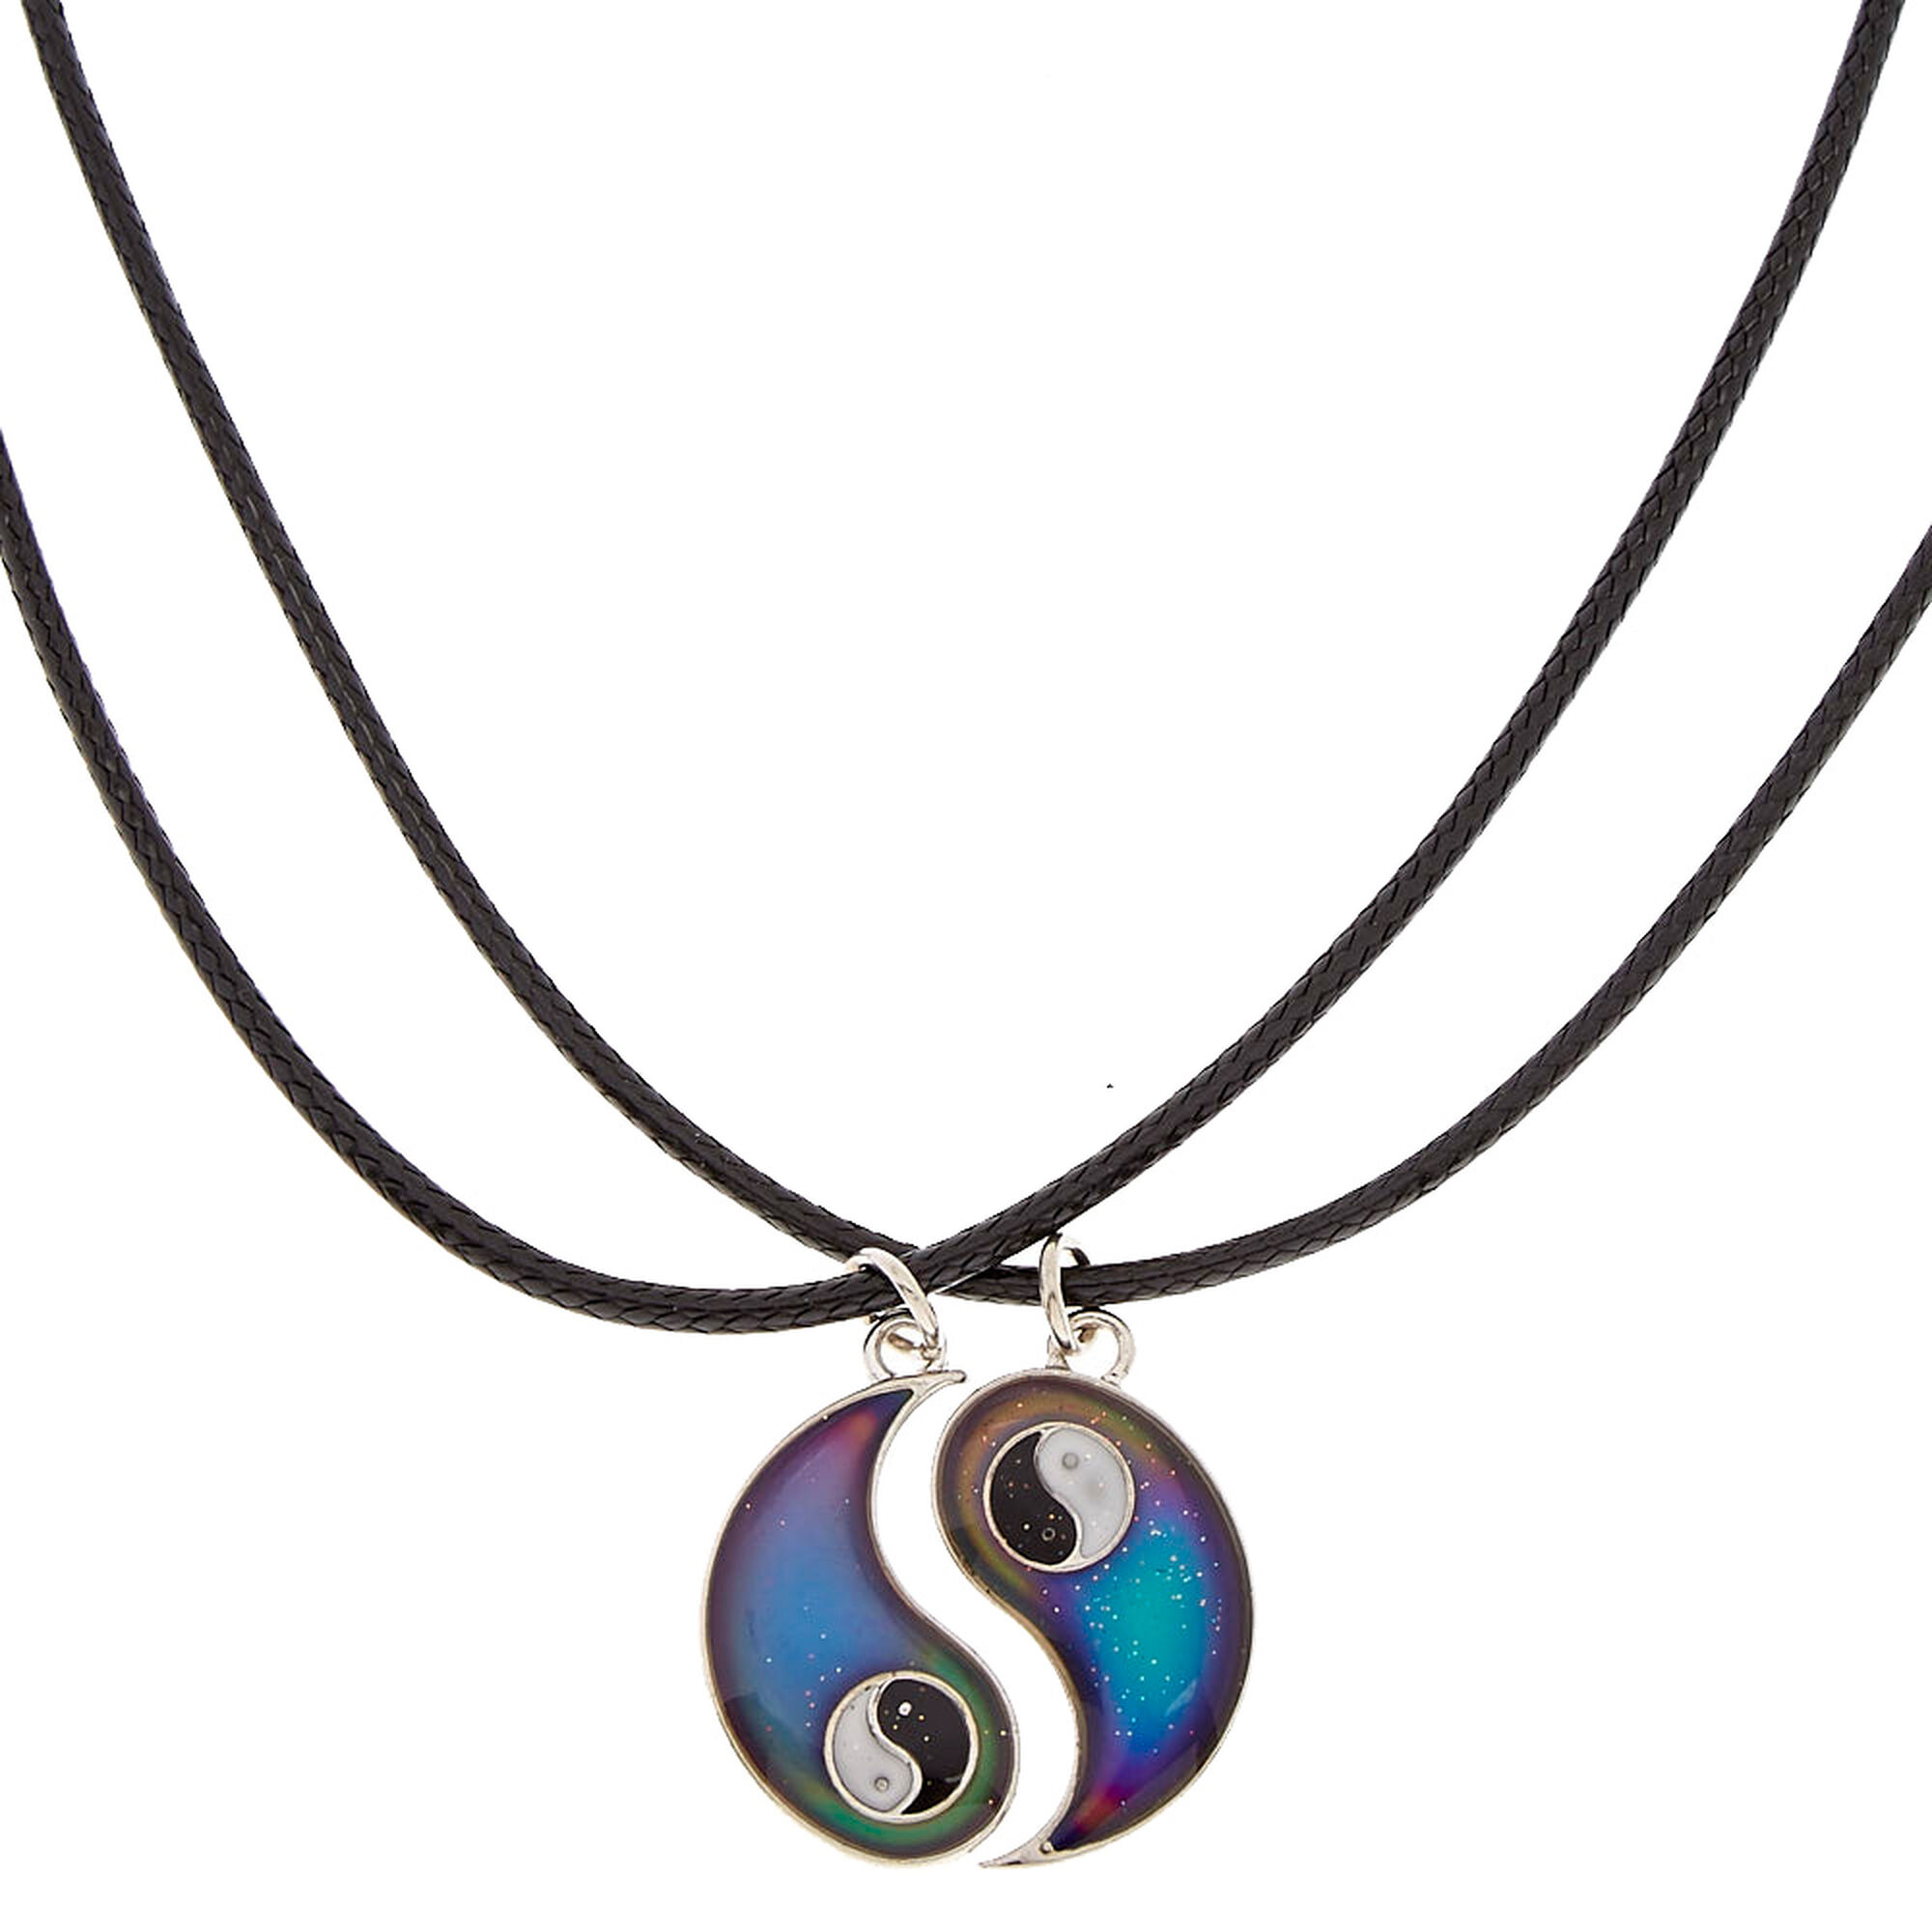 Best friends mood yin yang pendant necklaces claires us best friends mood yin yang pendant necklaces mozeypictures Image collections